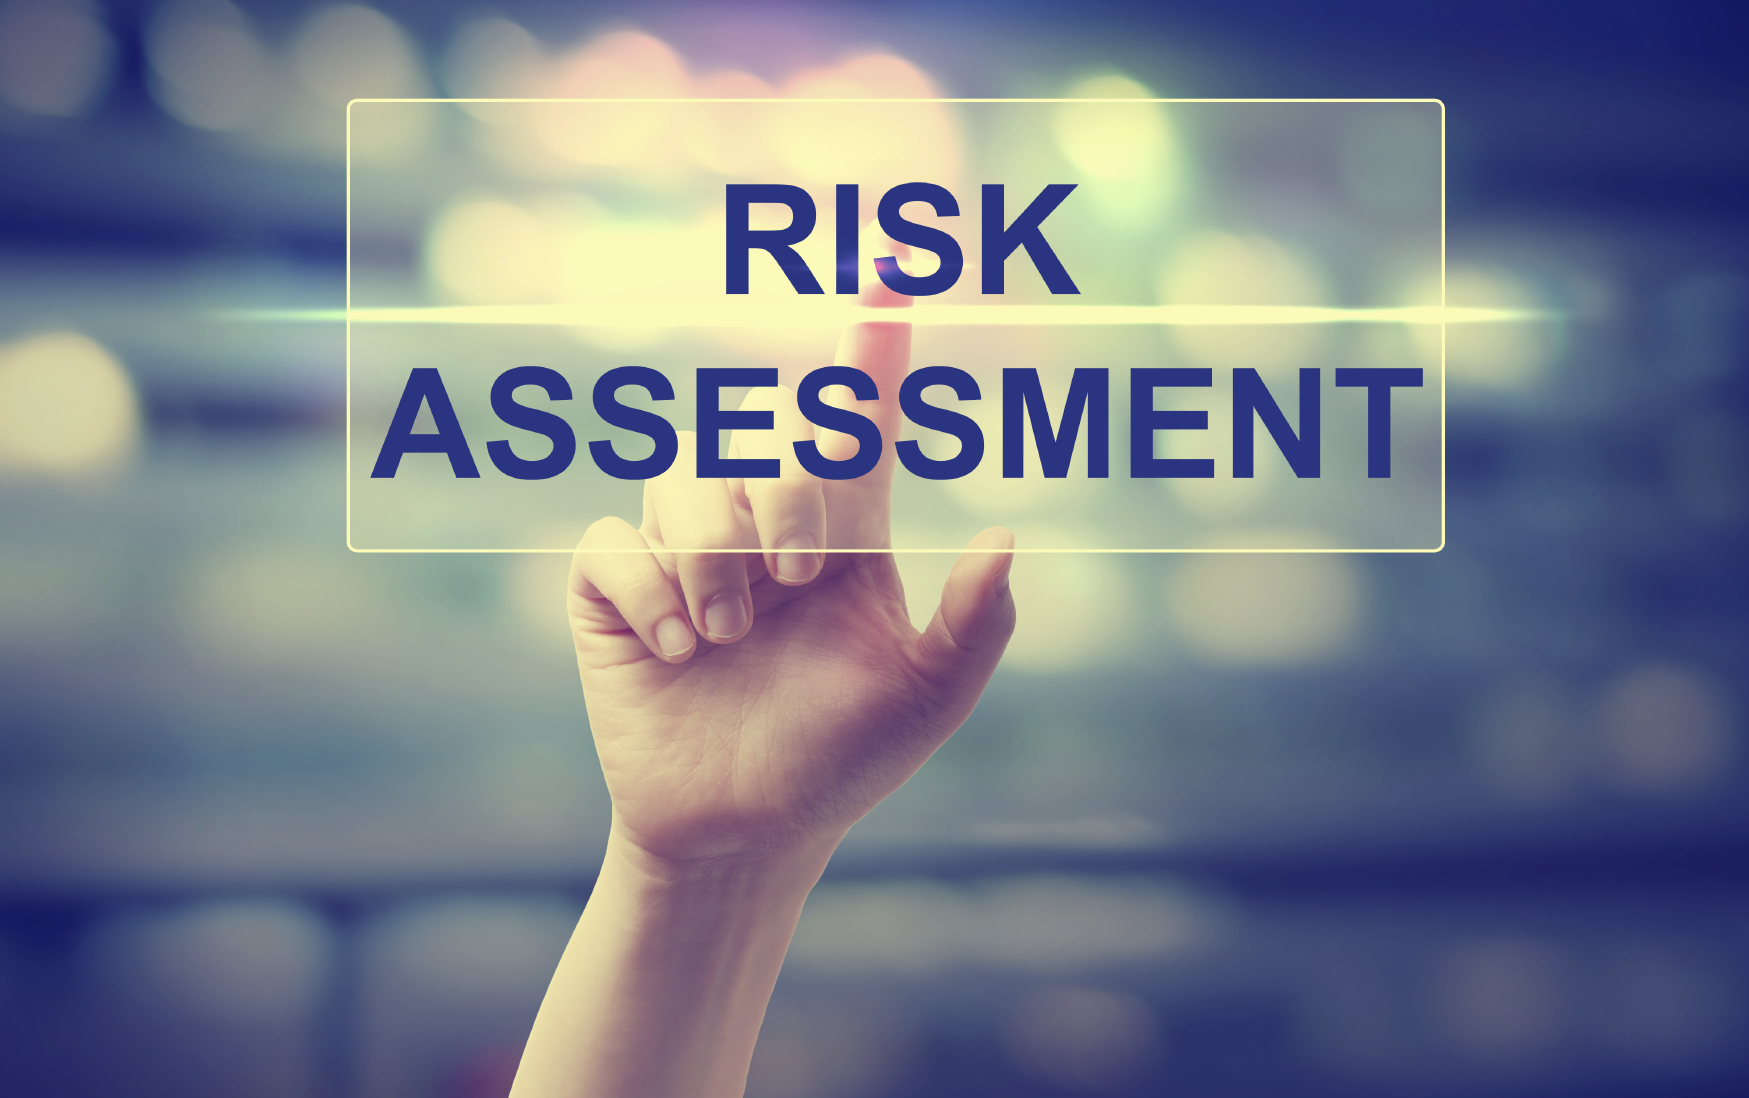 Field Level Risk Assessment Training